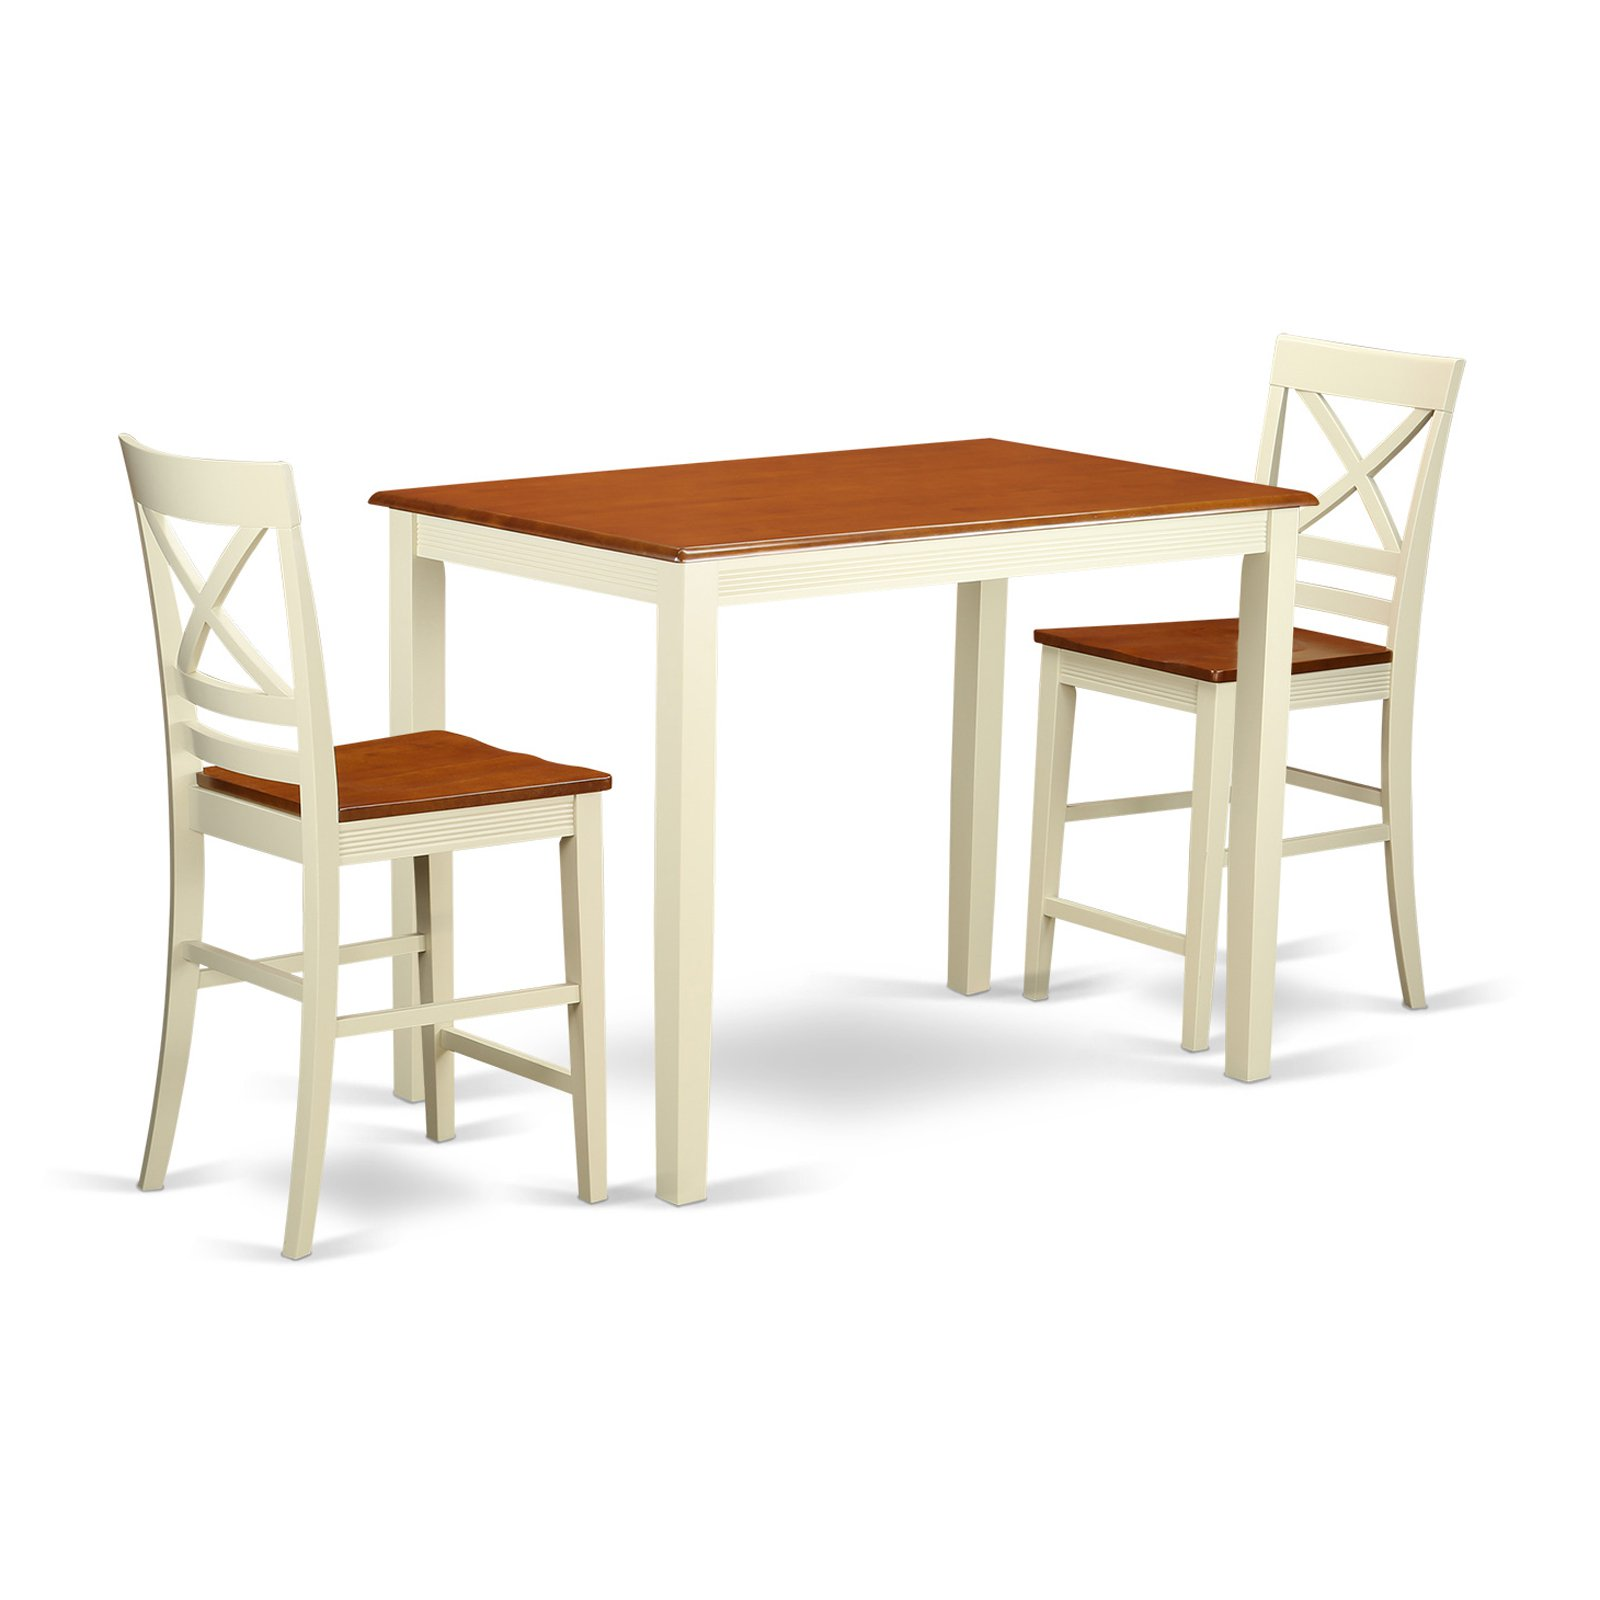 East West Furniture Yarmouth 3 Piece Cross-And-Ladder Dining Table Set